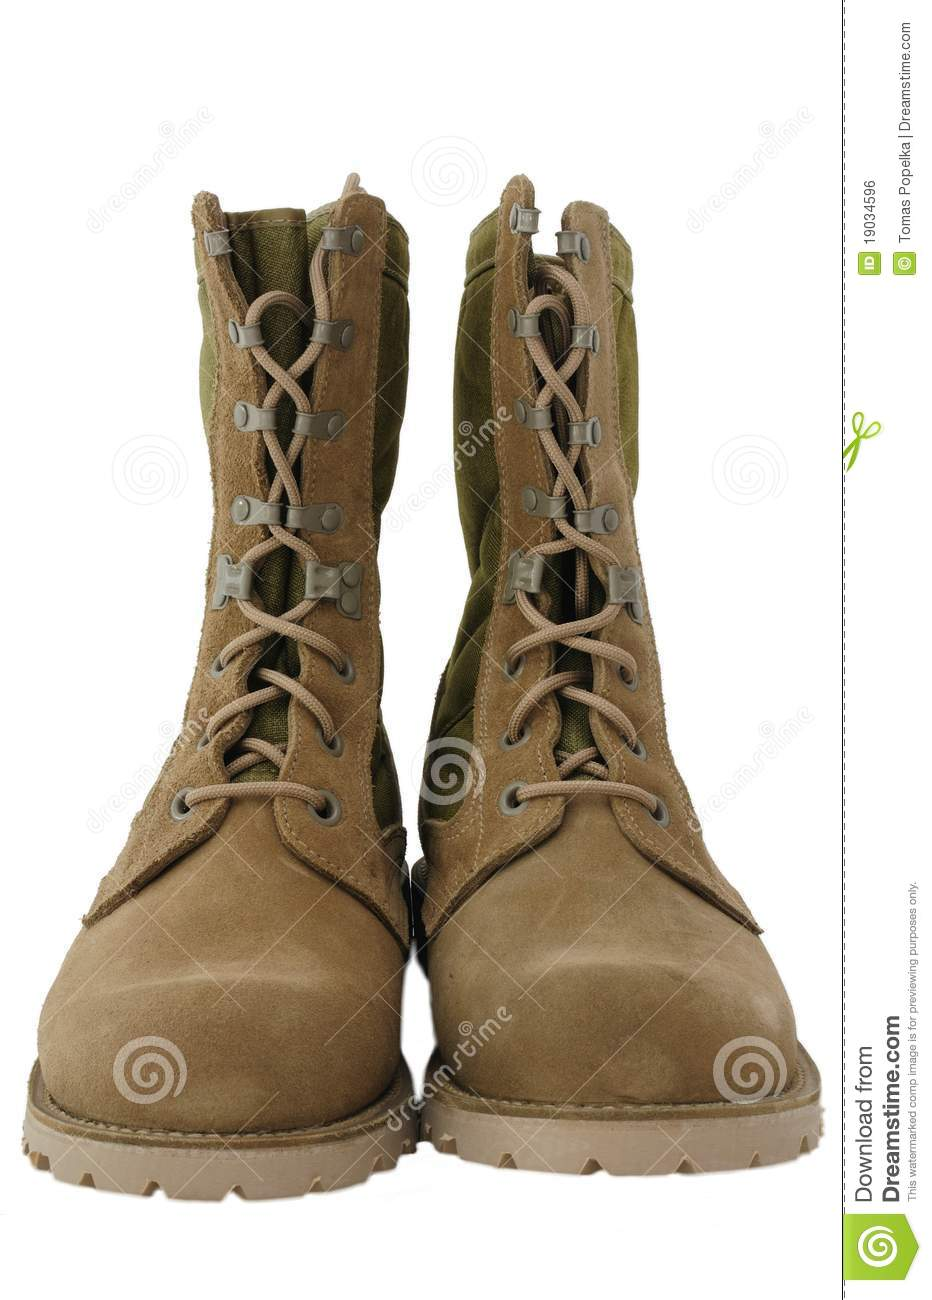 Military Desert Combat Boots Royalty Free Stock Image - Image ...